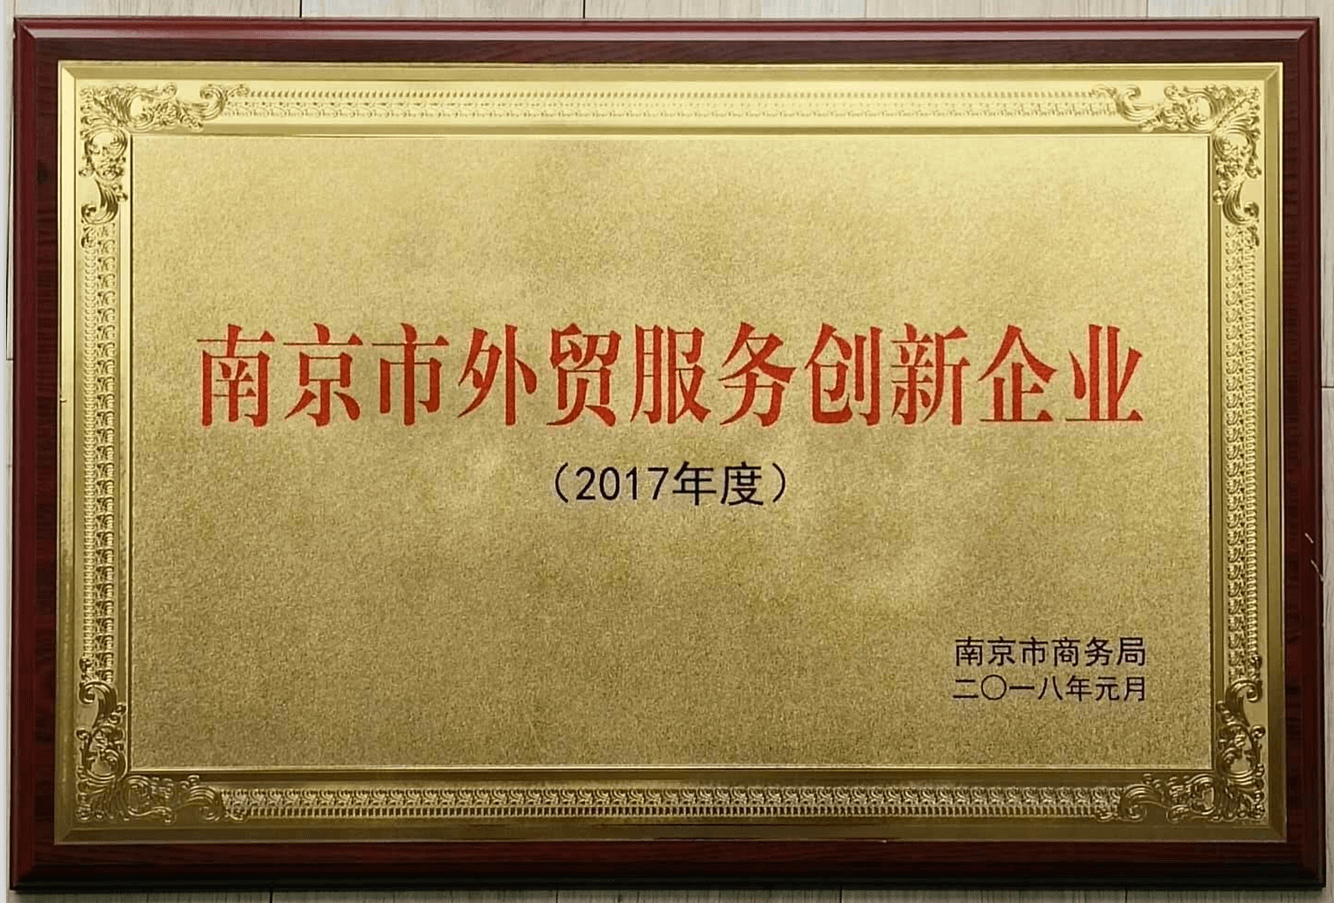 Warmly Congratulate That Sunchine Inspection Won The Title Of Nanjing Foreign Trade Service Innovation Enterprise!